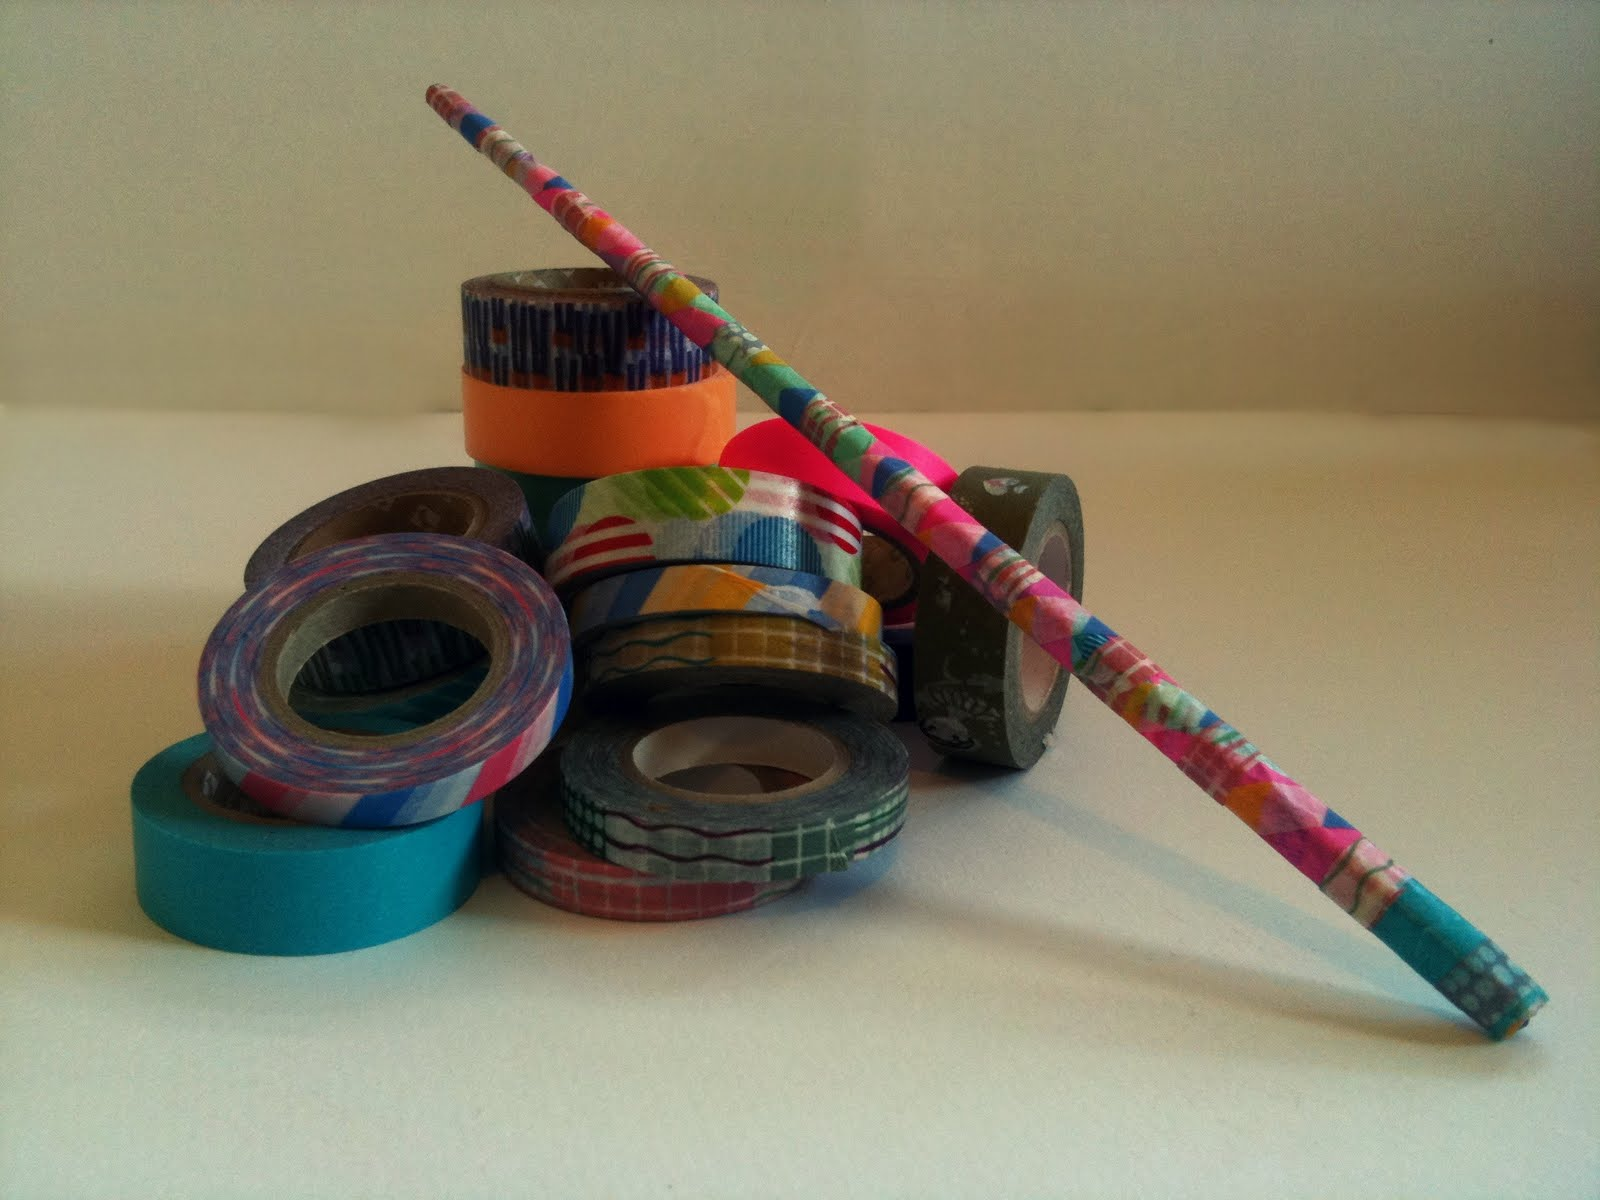 fortune favours washi tape wizard wand. Black Bedroom Furniture Sets. Home Design Ideas